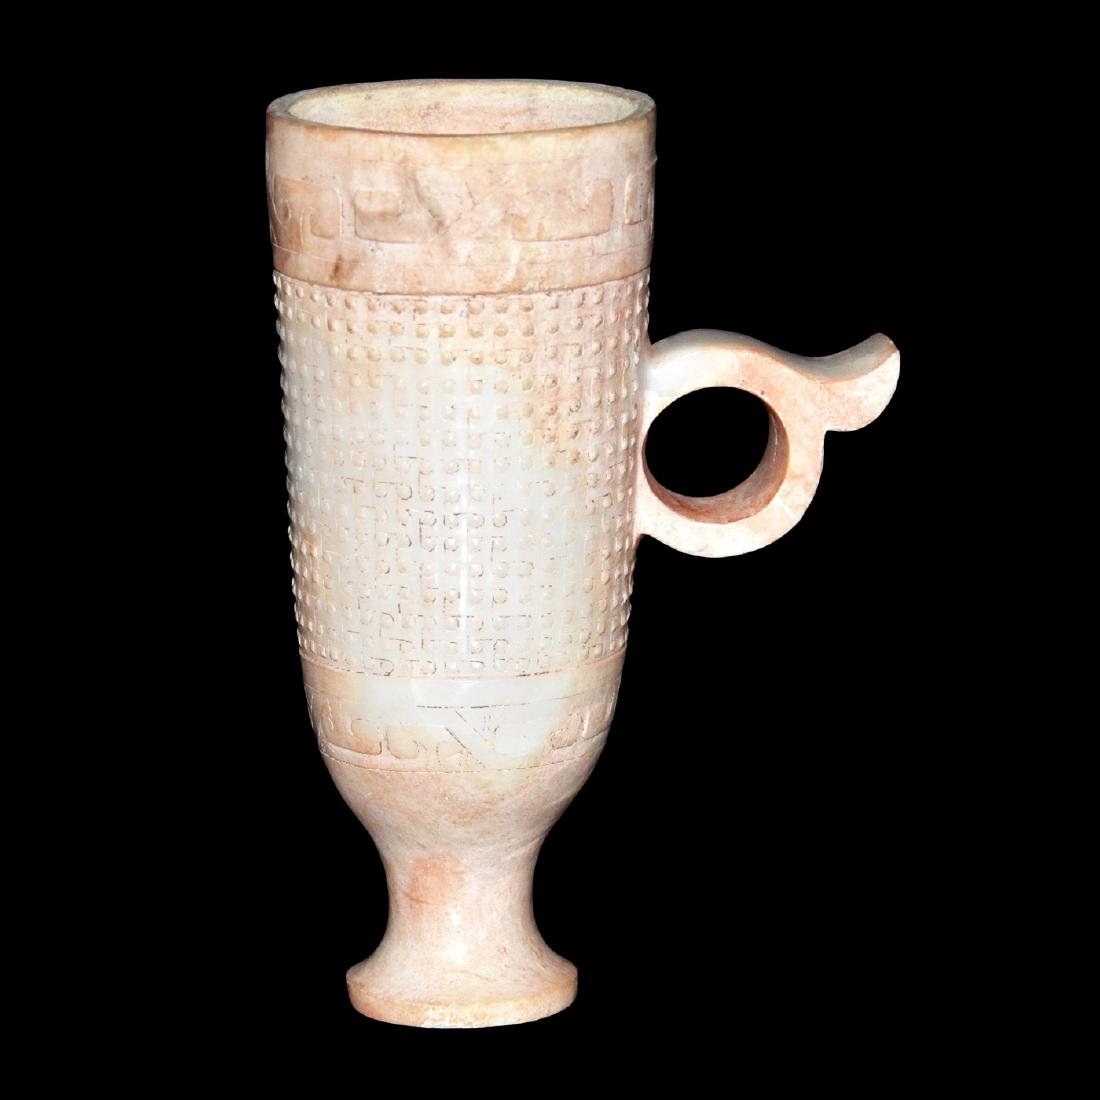 Qin Dynasty, A Very Rare Jade Stem Cup